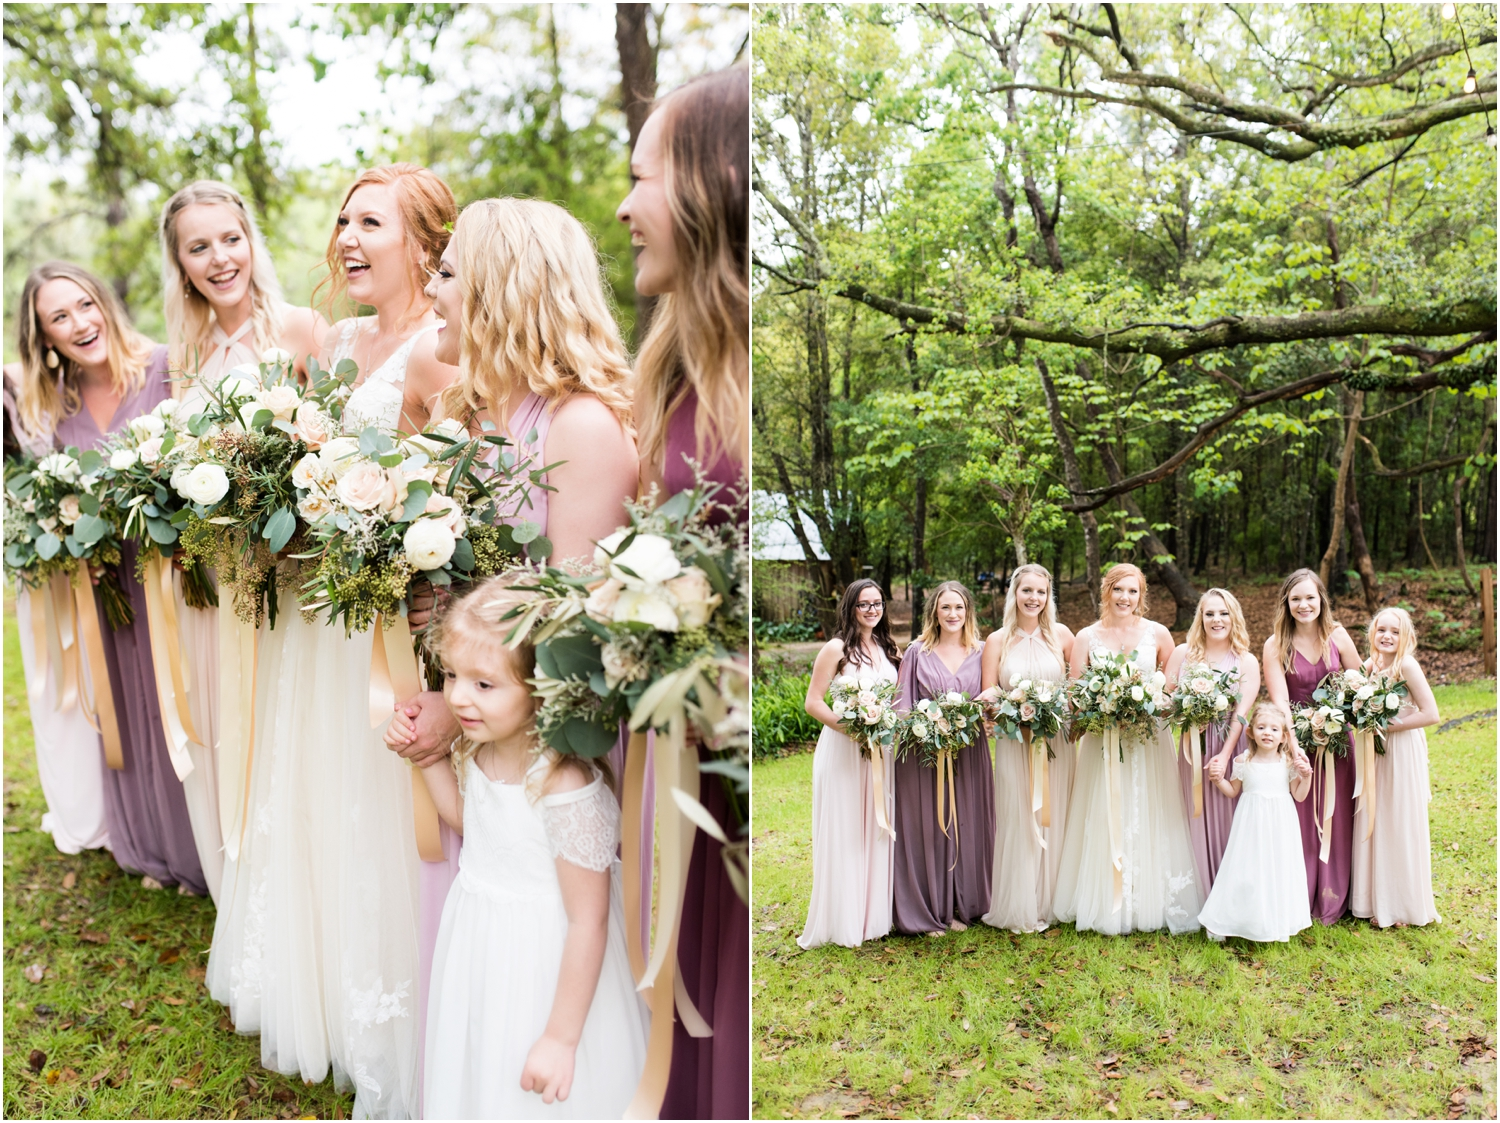 Live Oak Plantation Pensacola Florida Wedding Photographer wedding bridal party bridesmaids